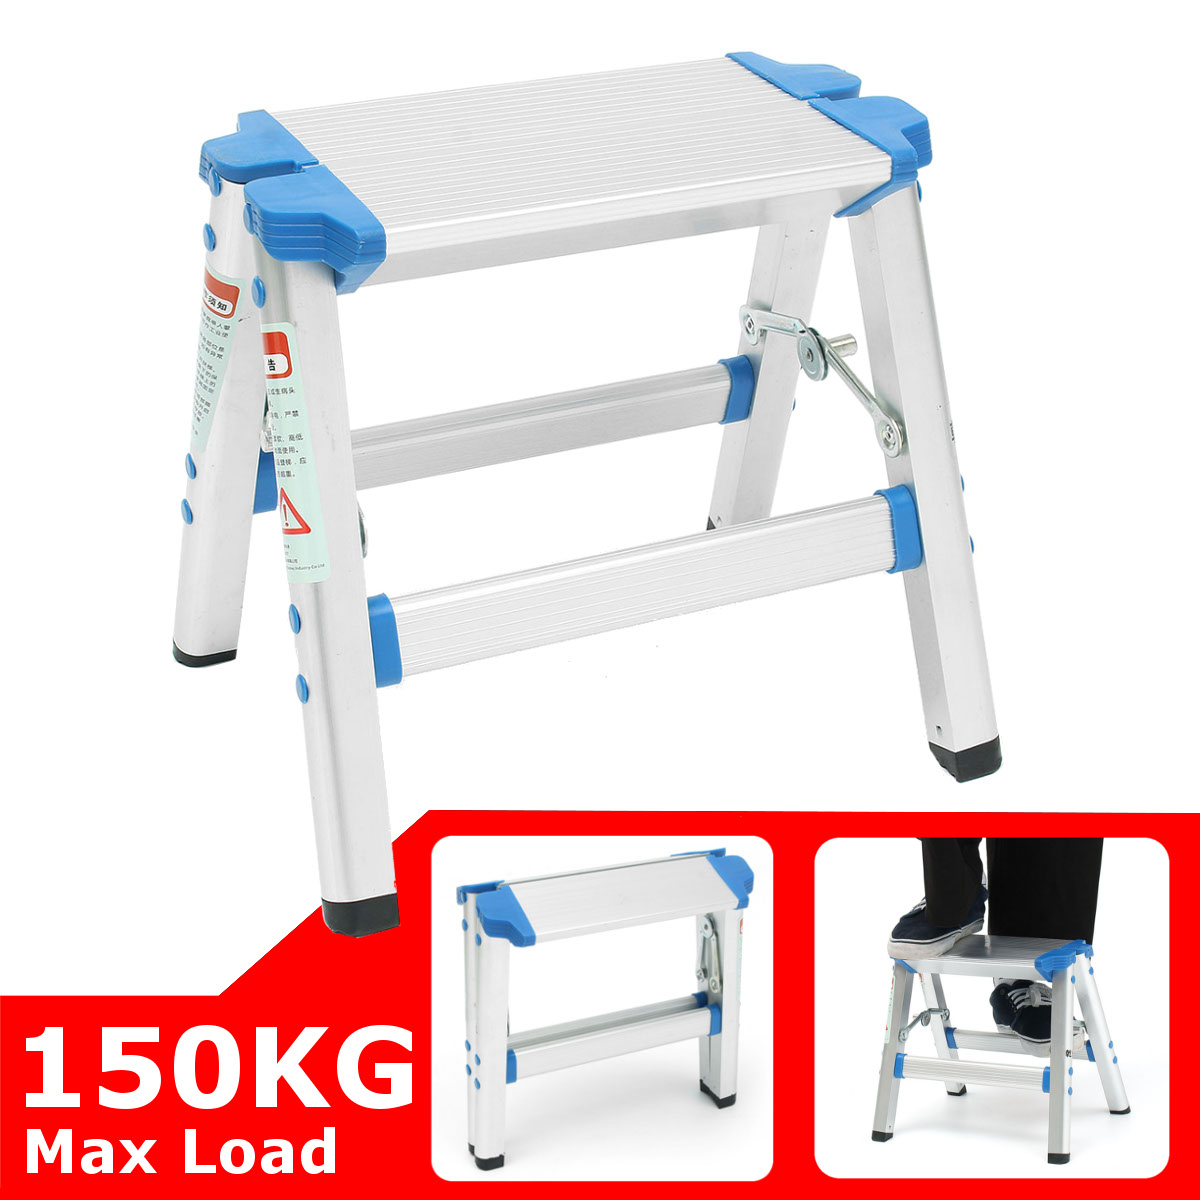 Anti Slip Small Folding Ladder Safety Step Ladder Folding Step Stools Construction Tool Multifunctional Aluminium